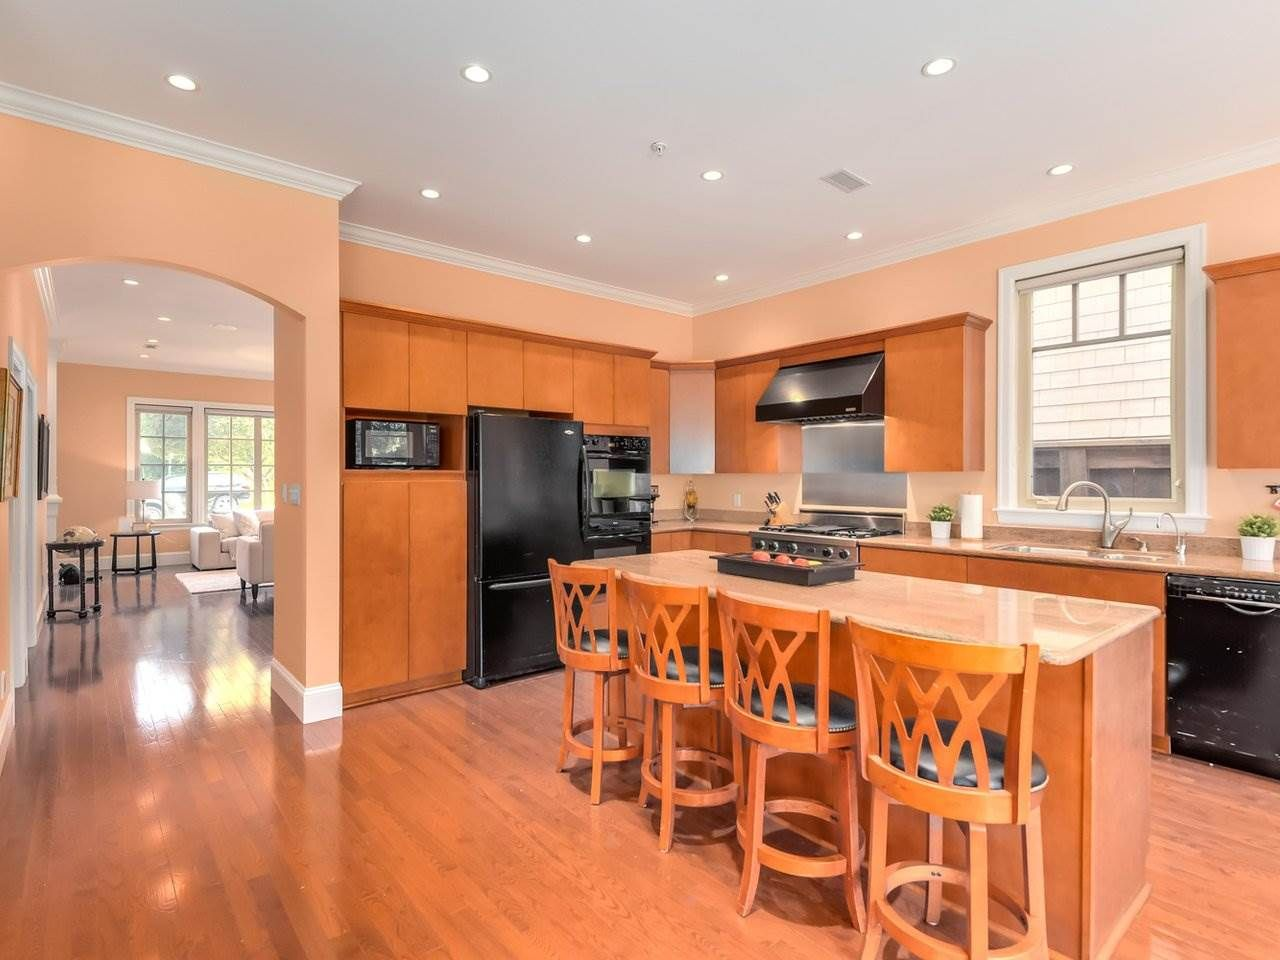 Photo 6: Photos: 694 W 19TH AVENUE in Vancouver: Cambie House for sale (Vancouver West)  : MLS®# R2186365